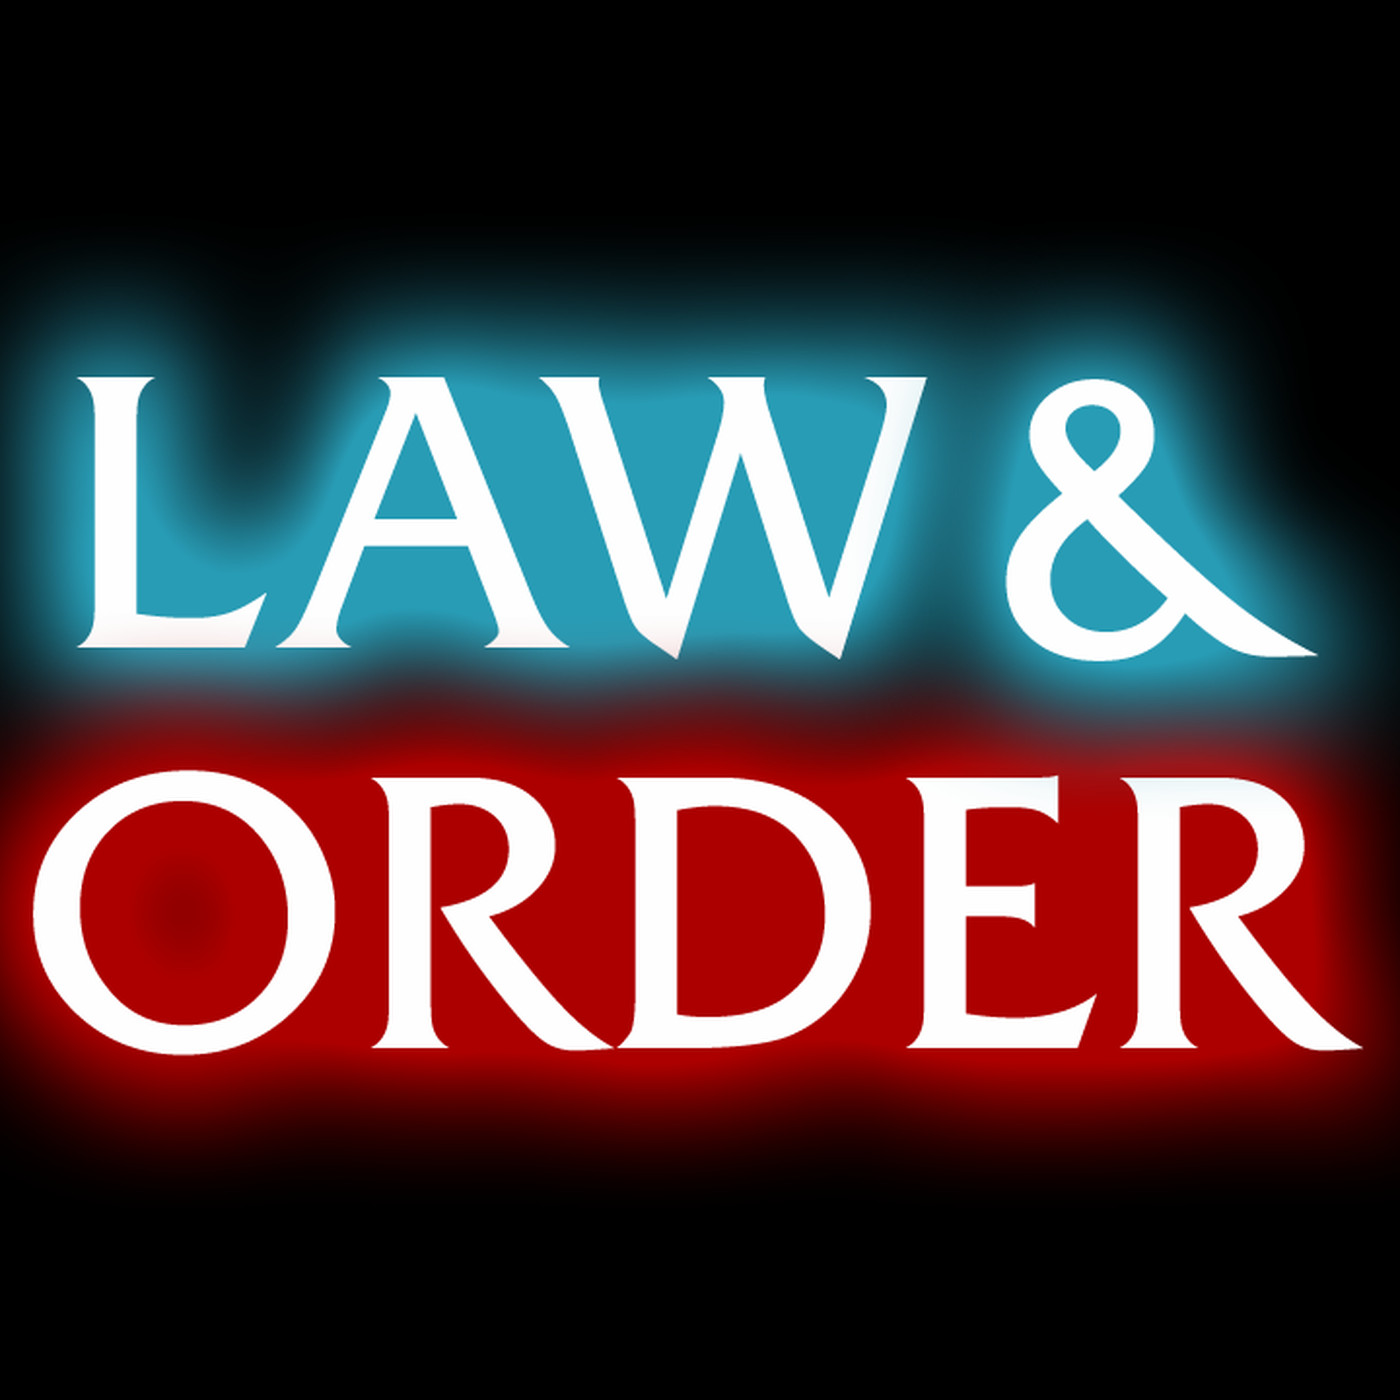 Law & Order turns 25 today, as does the greatest sound